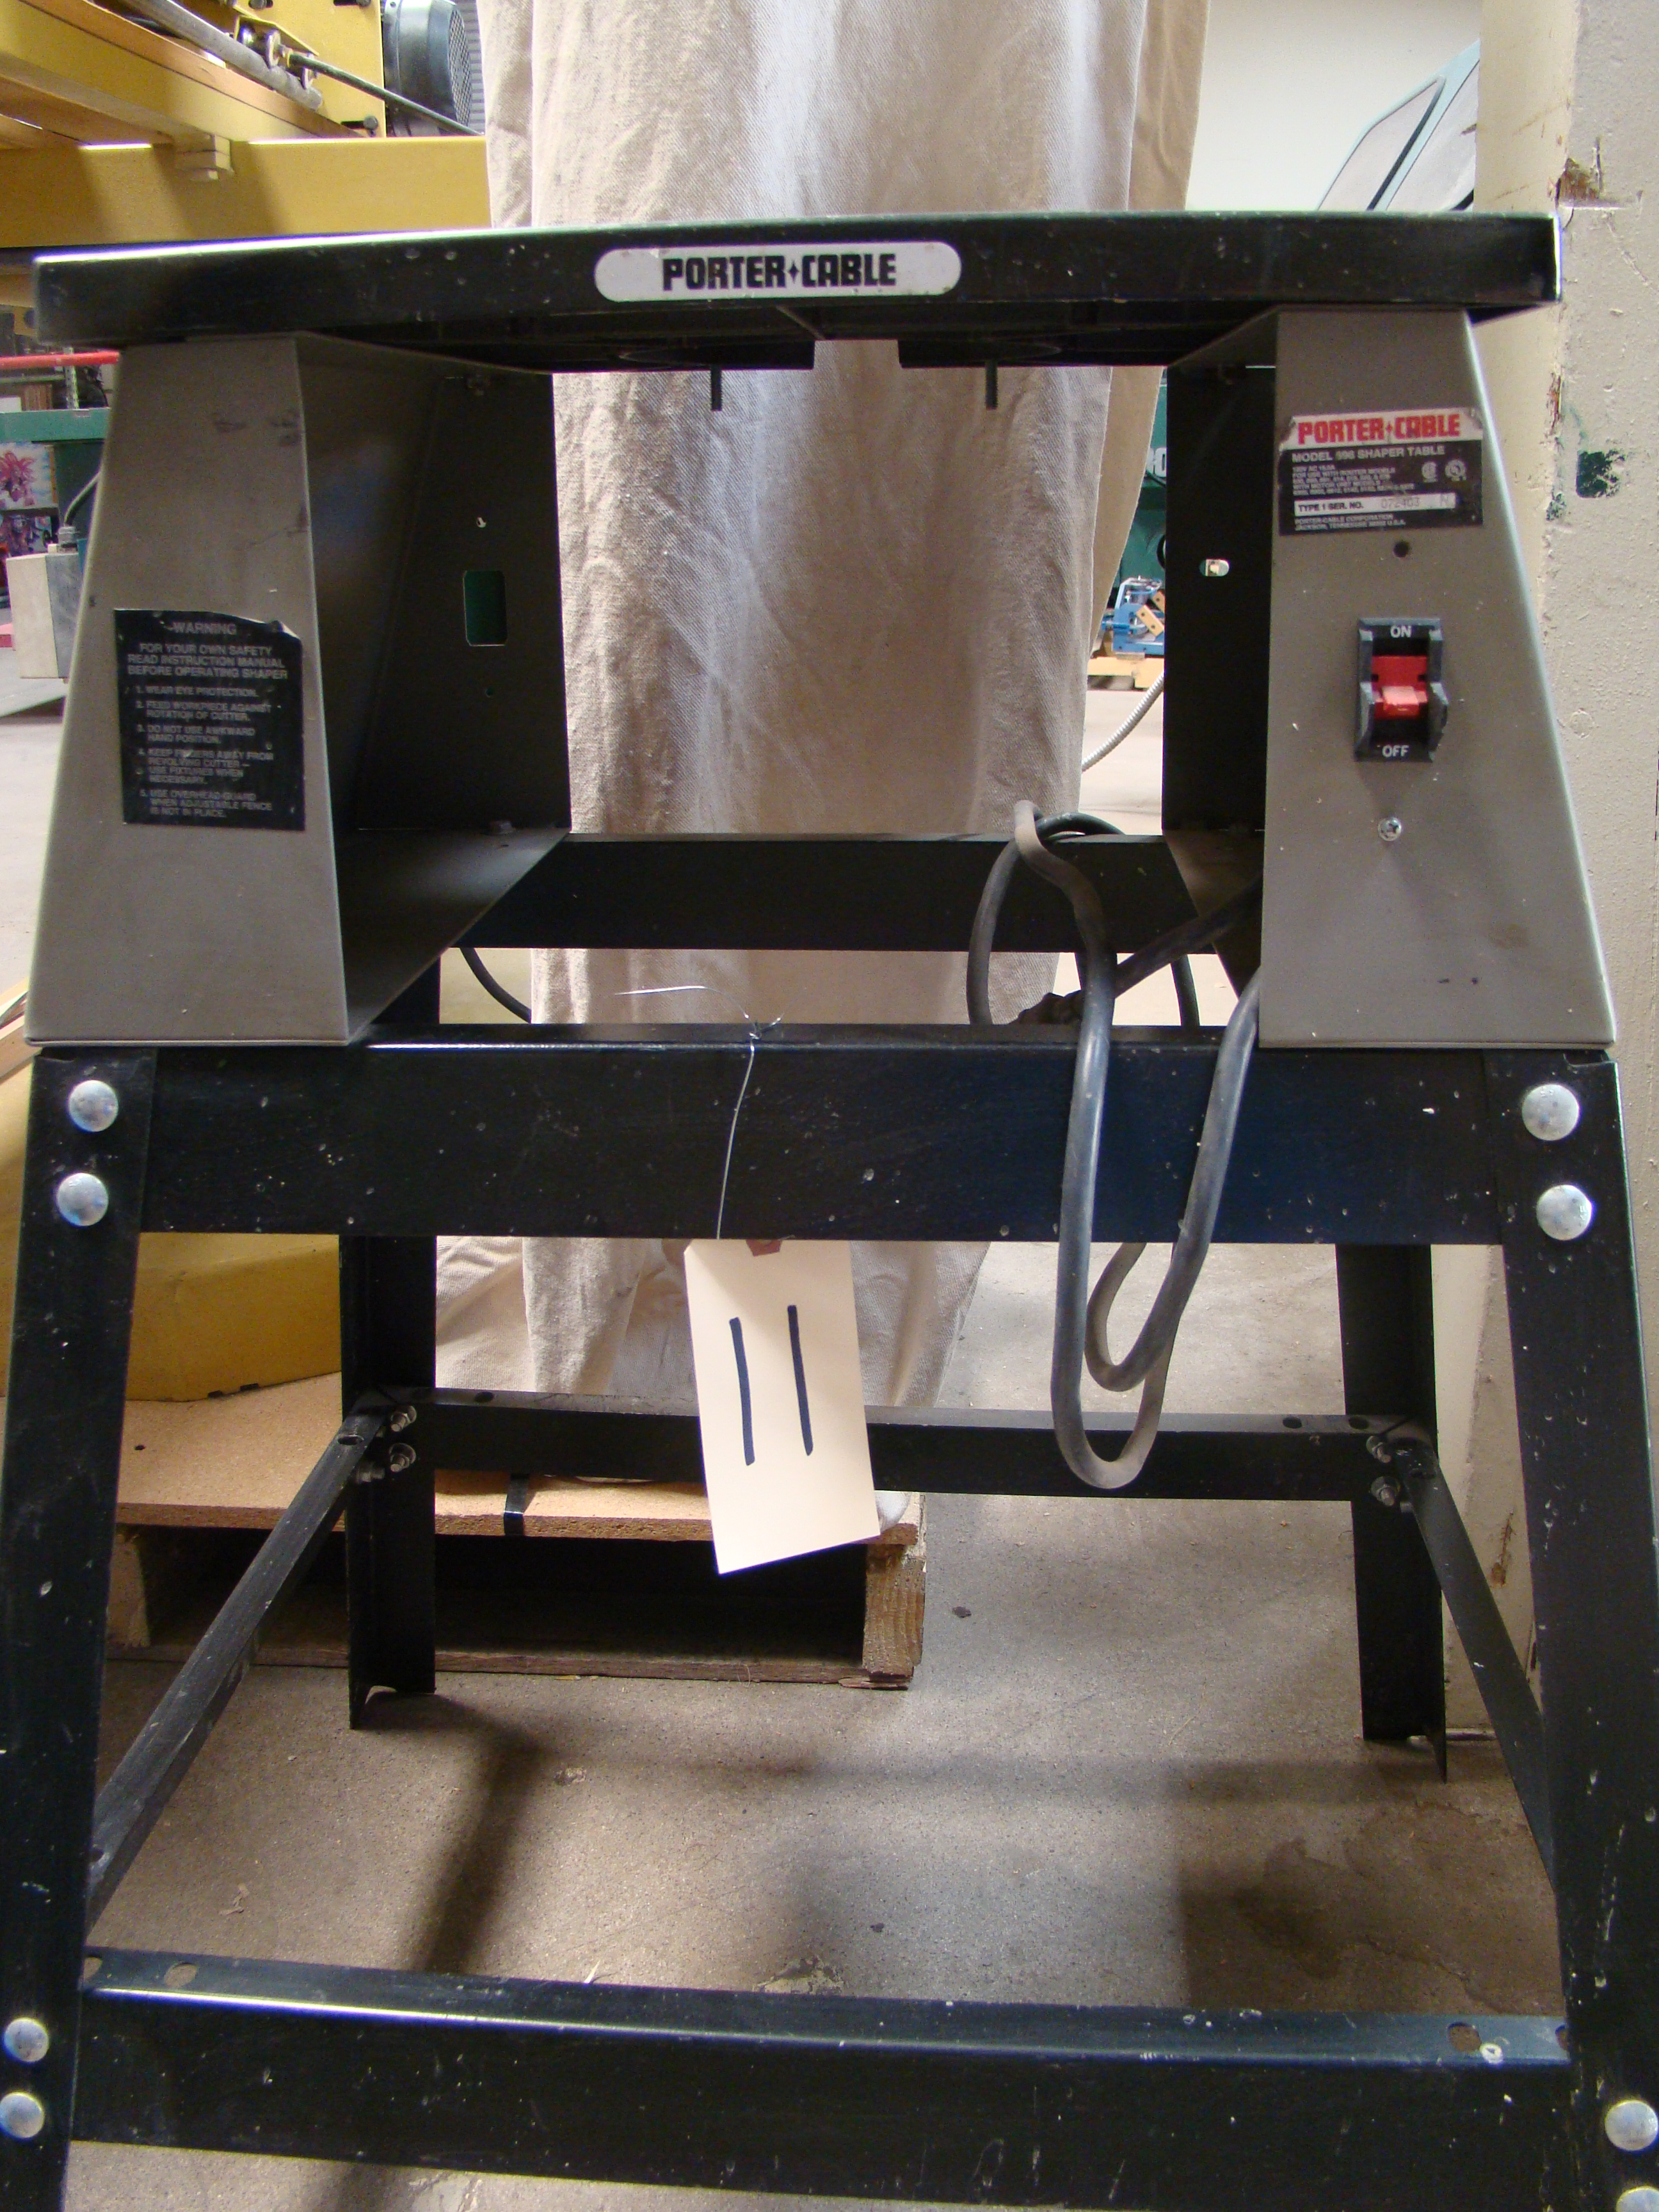 Porter Cable #6960 Router/Shaper Table and Stand only - Image 2 of 2